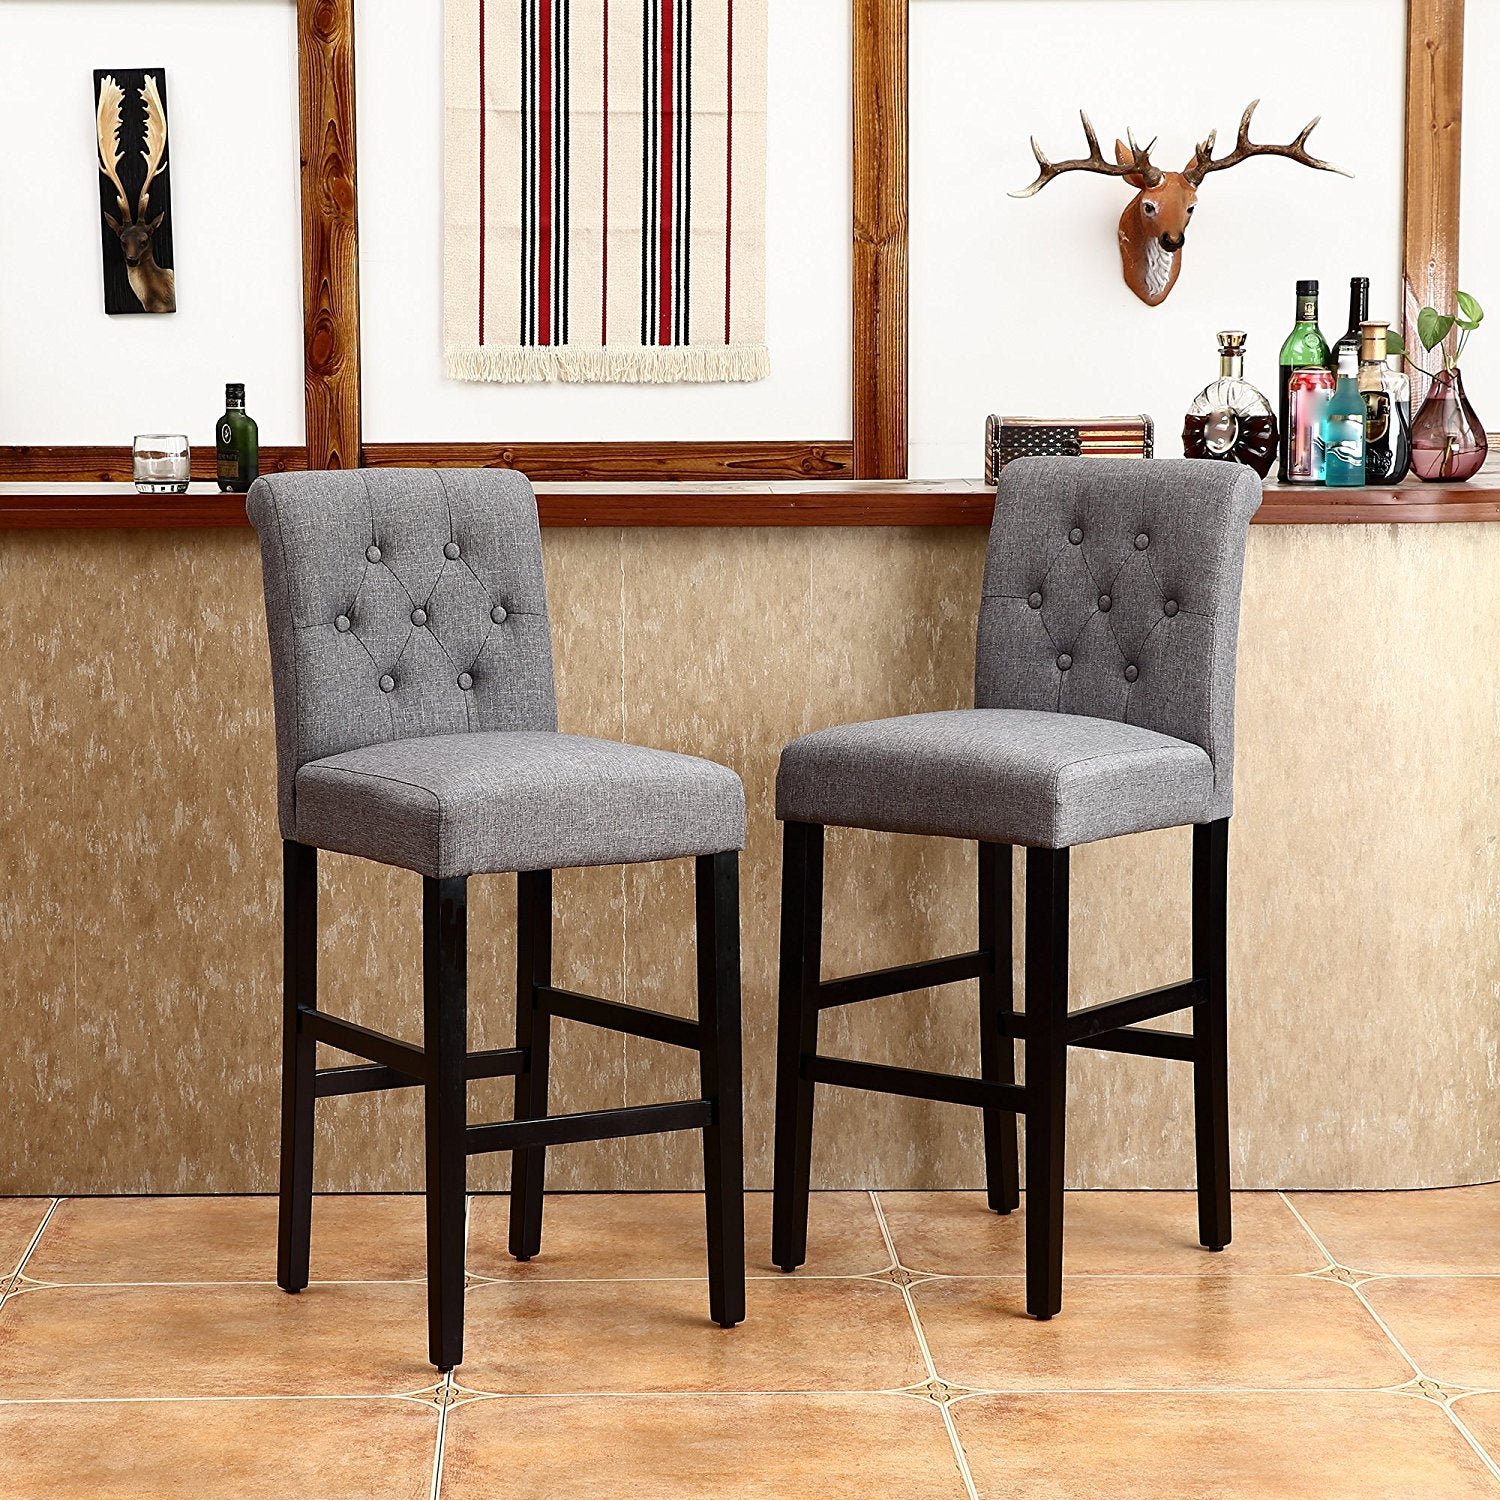 Transitional Design - (Set of 2) Barstools